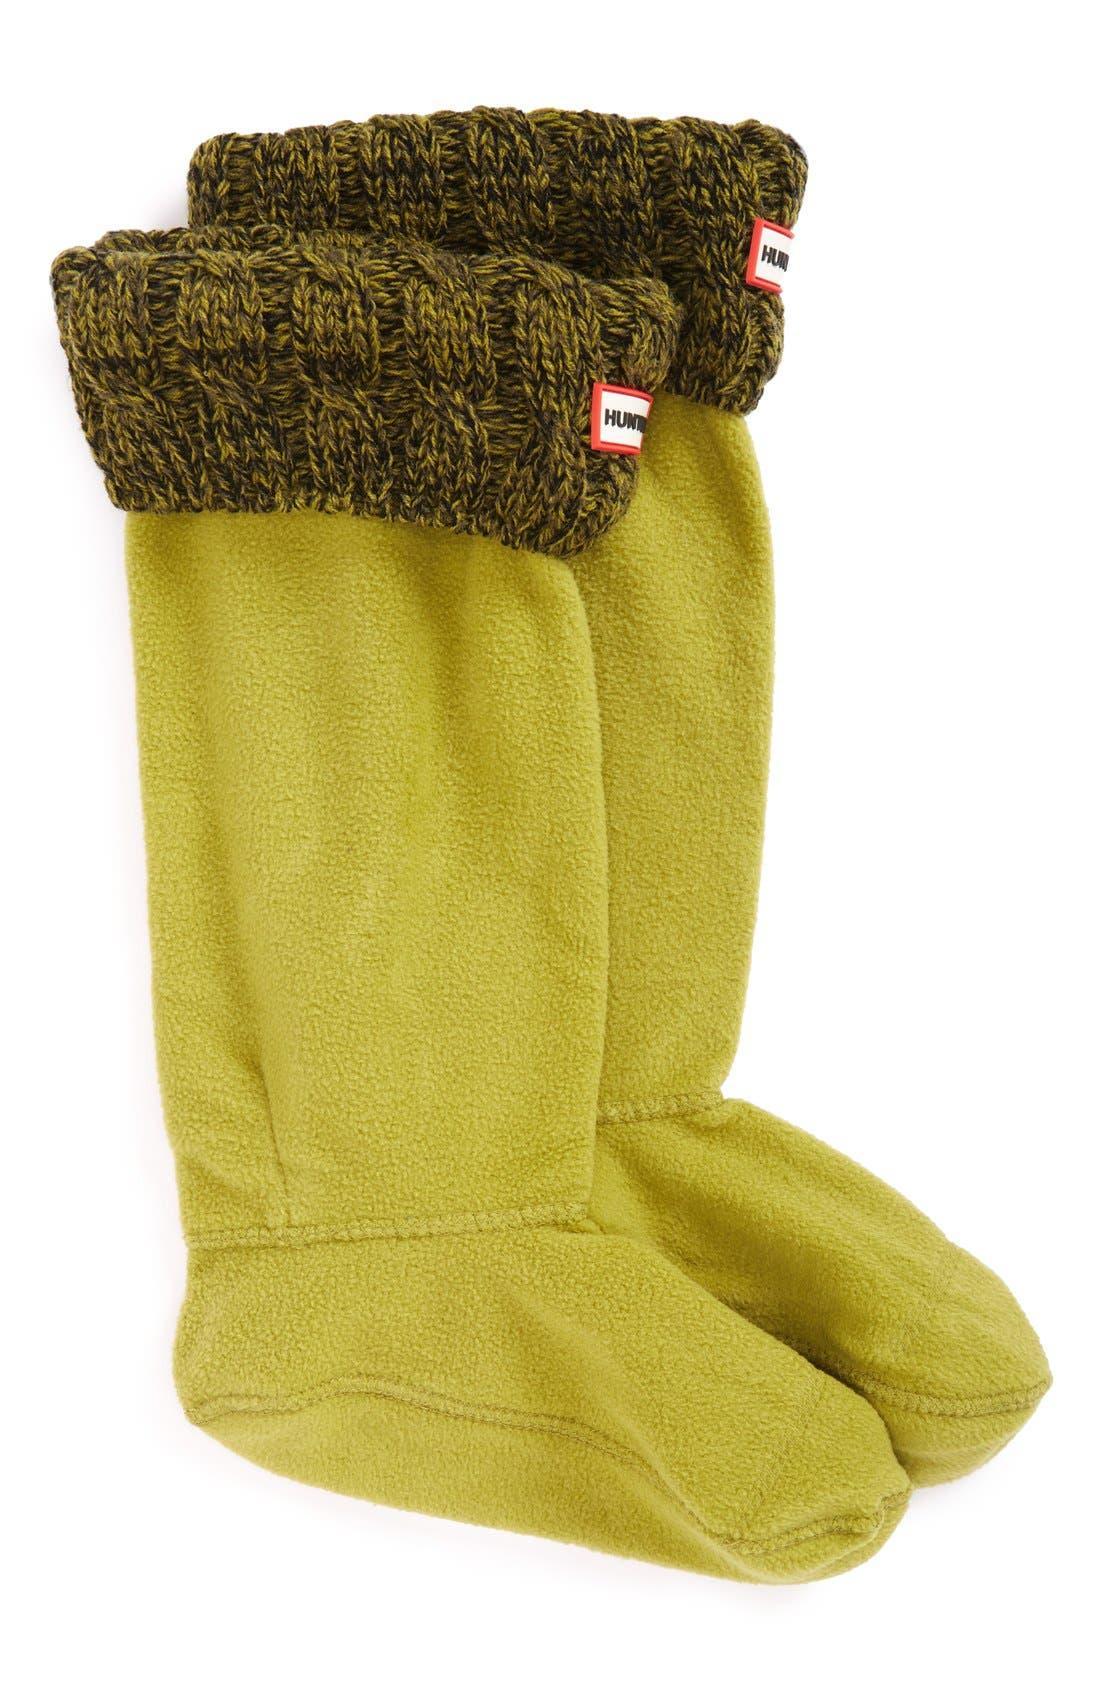 Alternate Image 1 Selected - Hunter Original Tall Cable Knit Cuff Welly Boot Socks